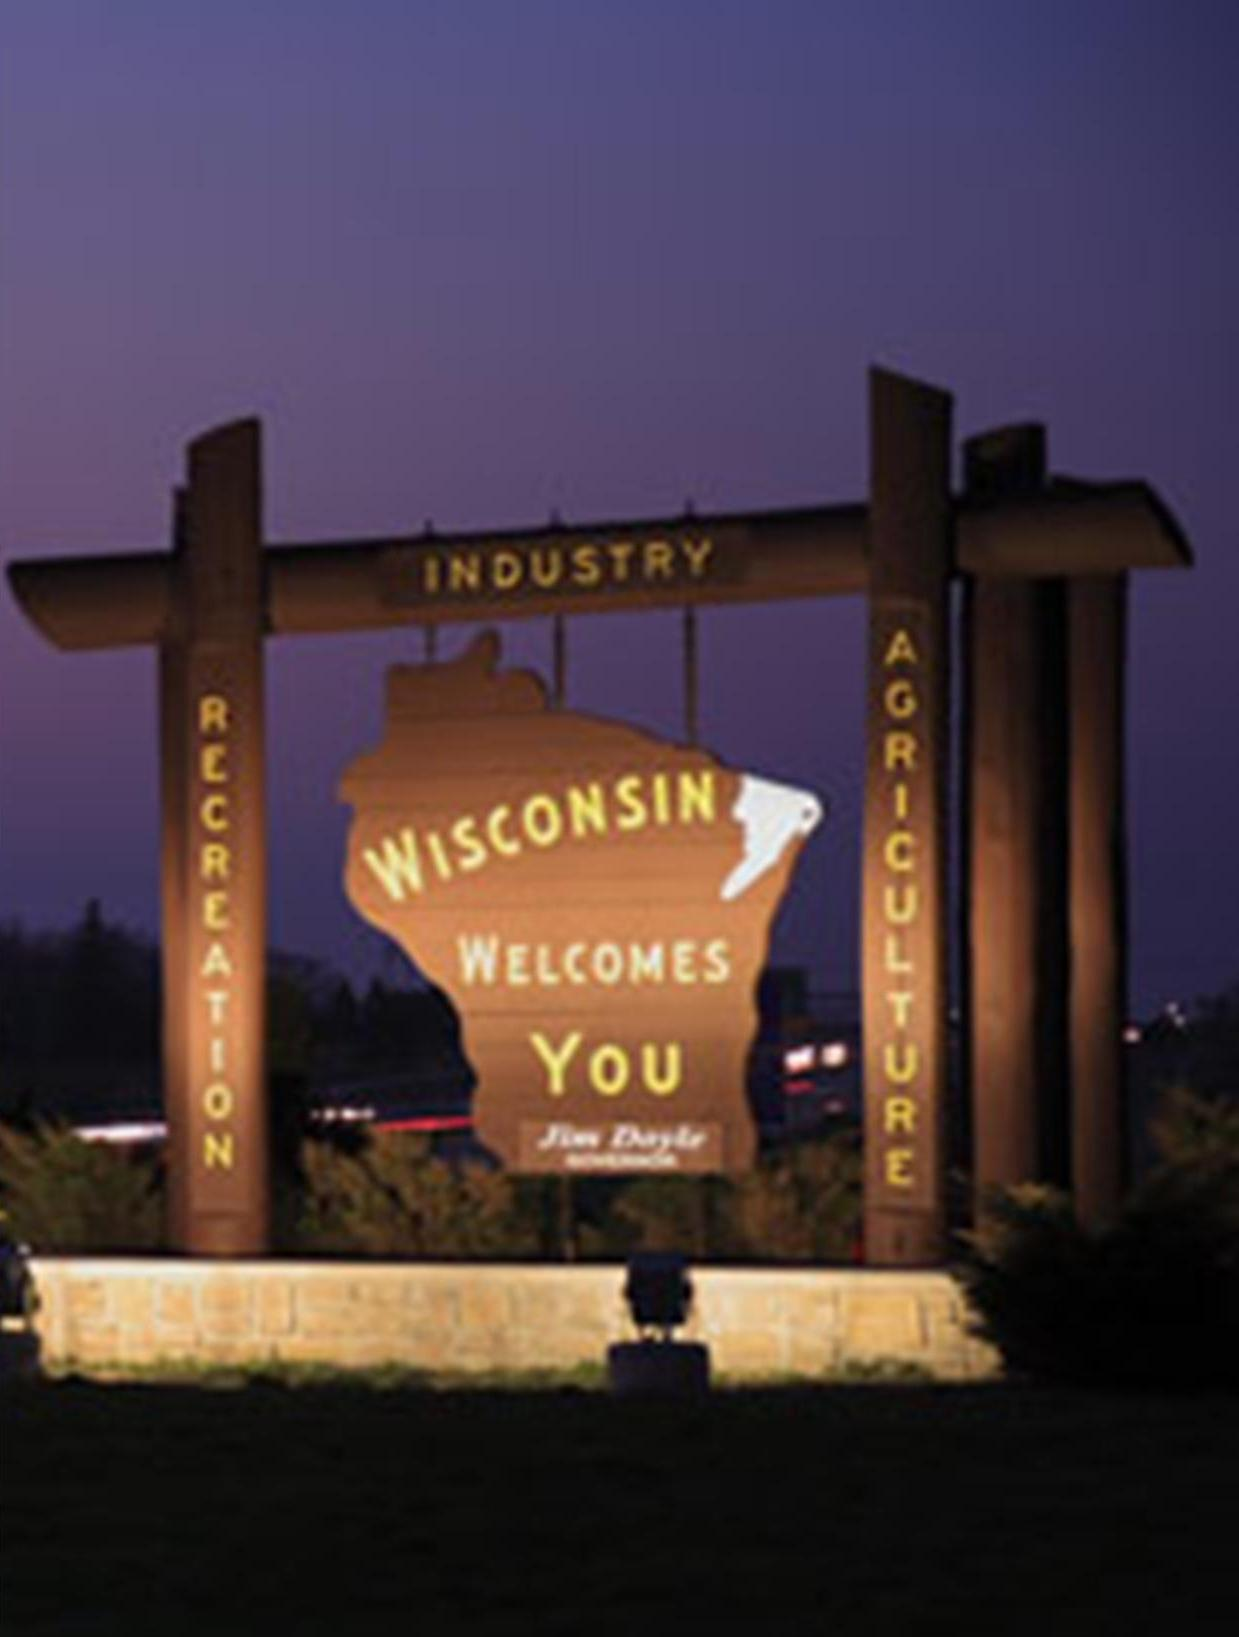 Wisconsin Properties